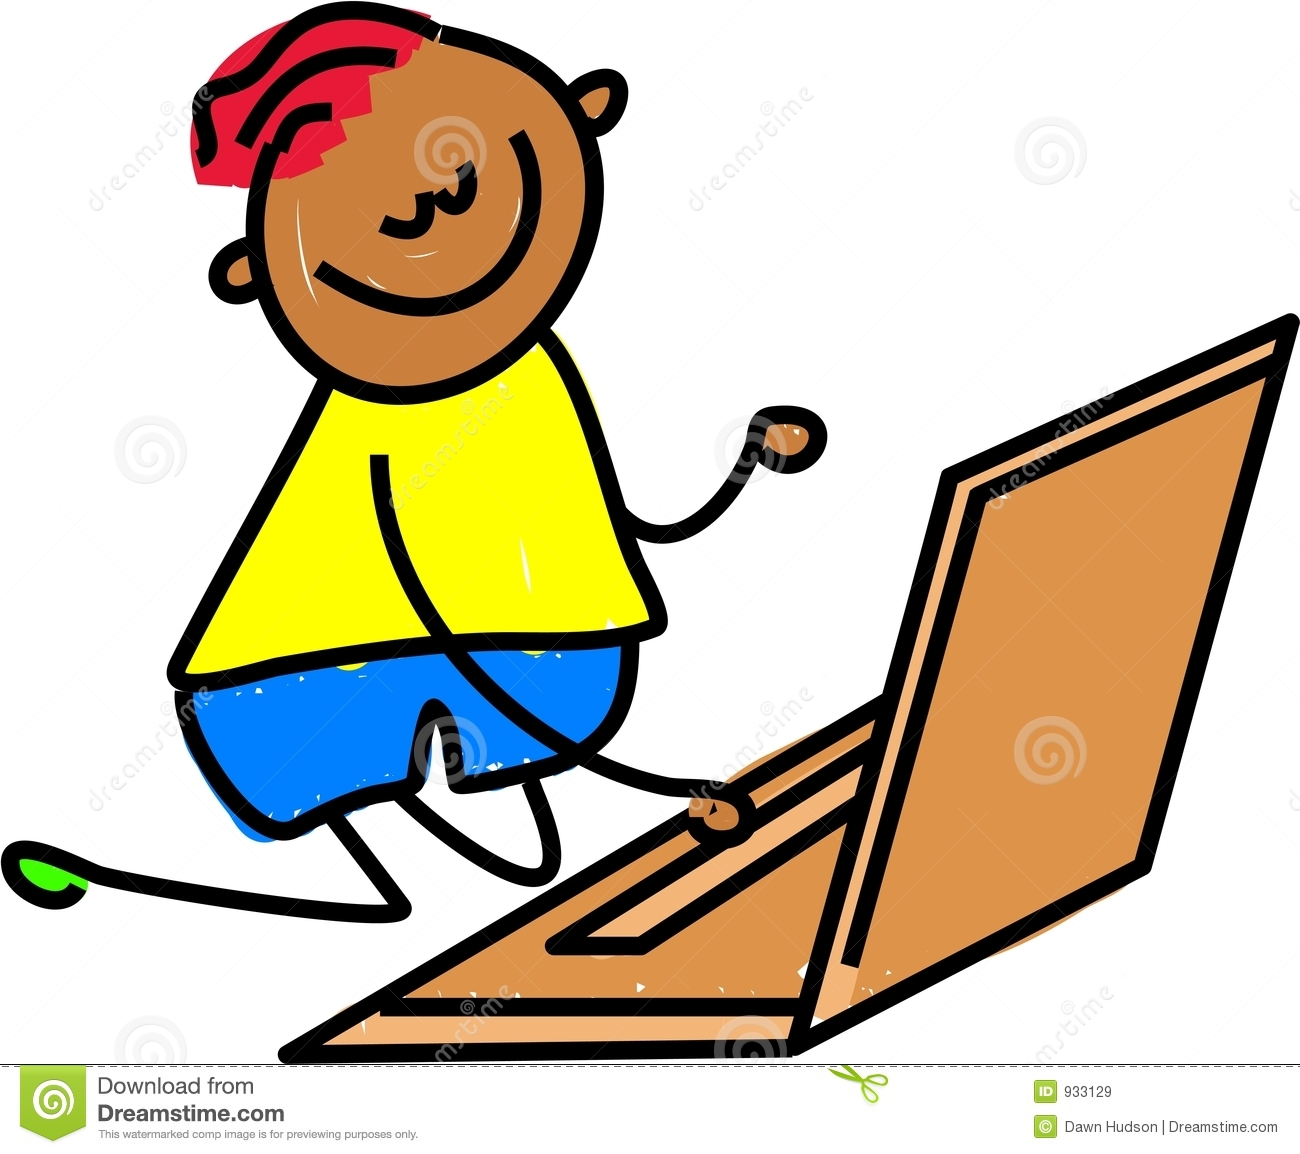 Kind am computer clipart clip royalty free stock Kid computer clipart - ClipartFest clip royalty free stock